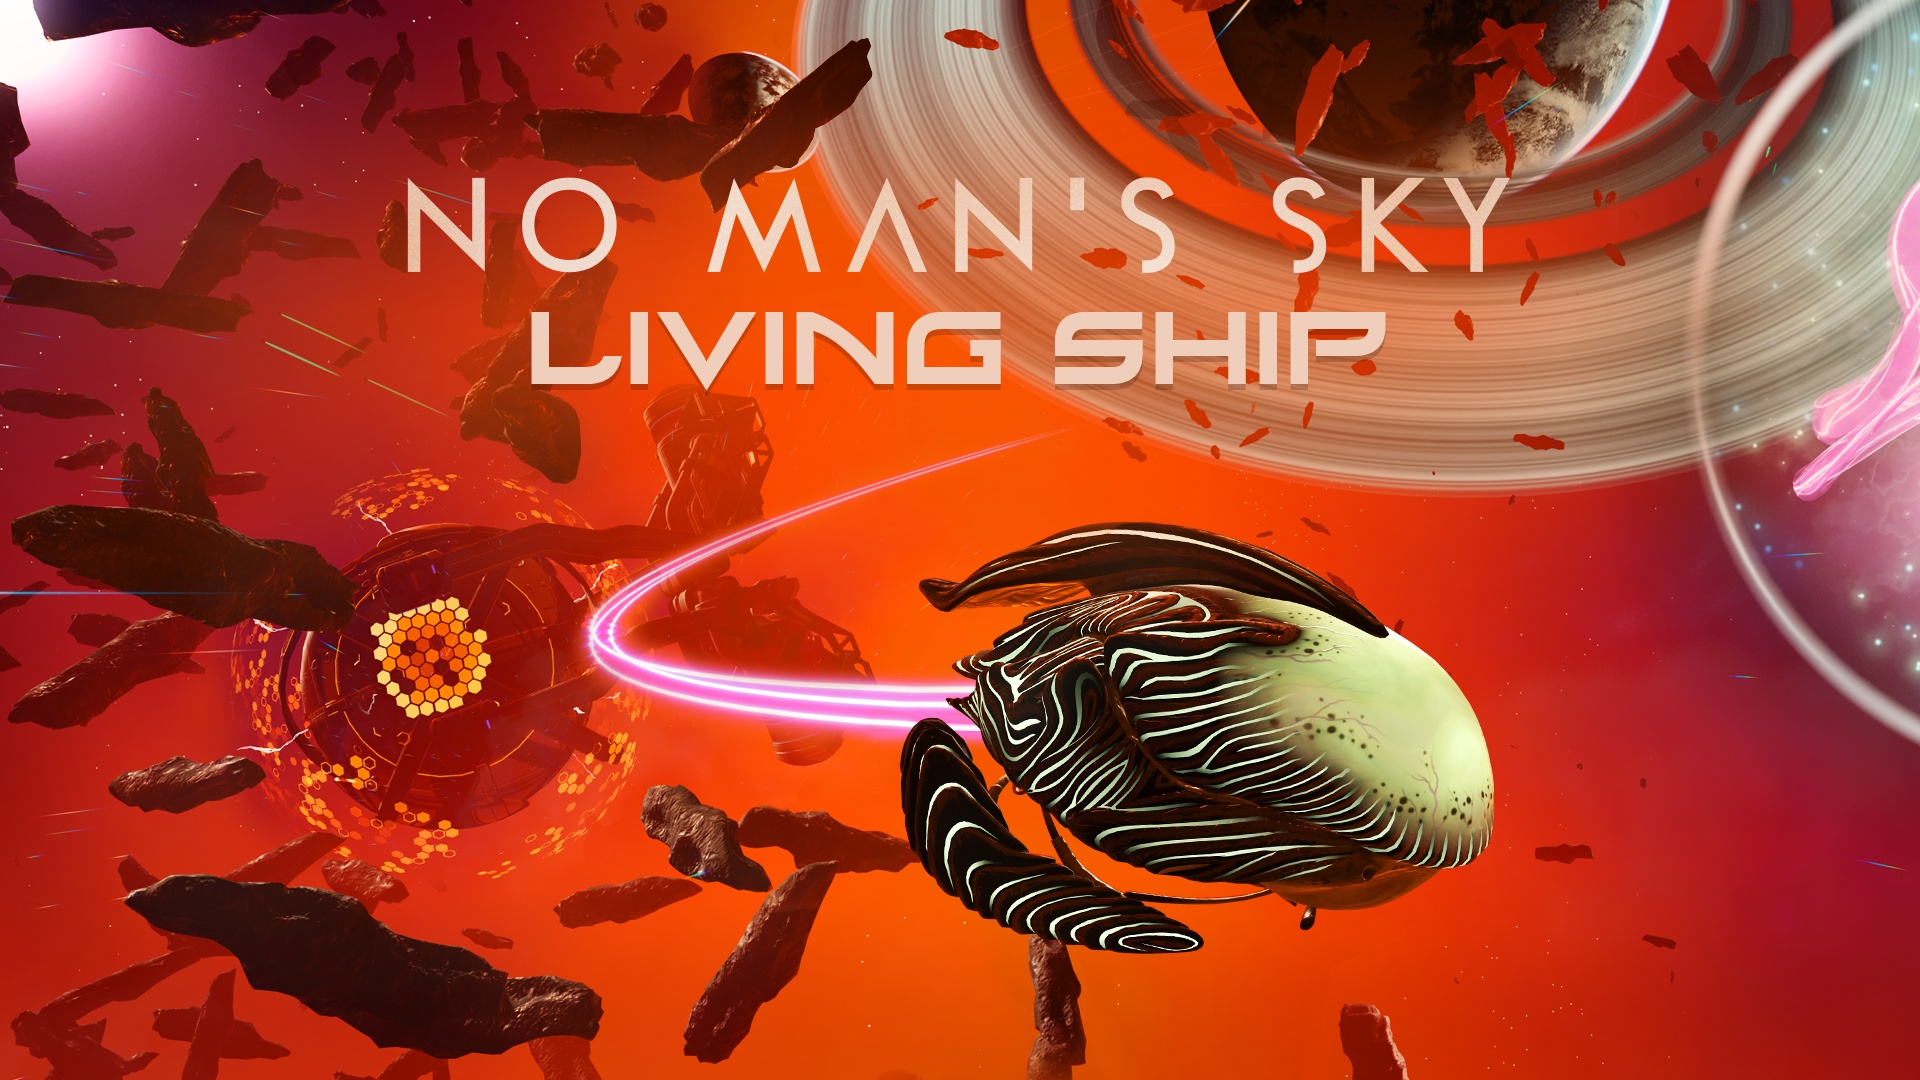 Video For Announcing the Living Ship Update for No Man's Sky on Xbox One